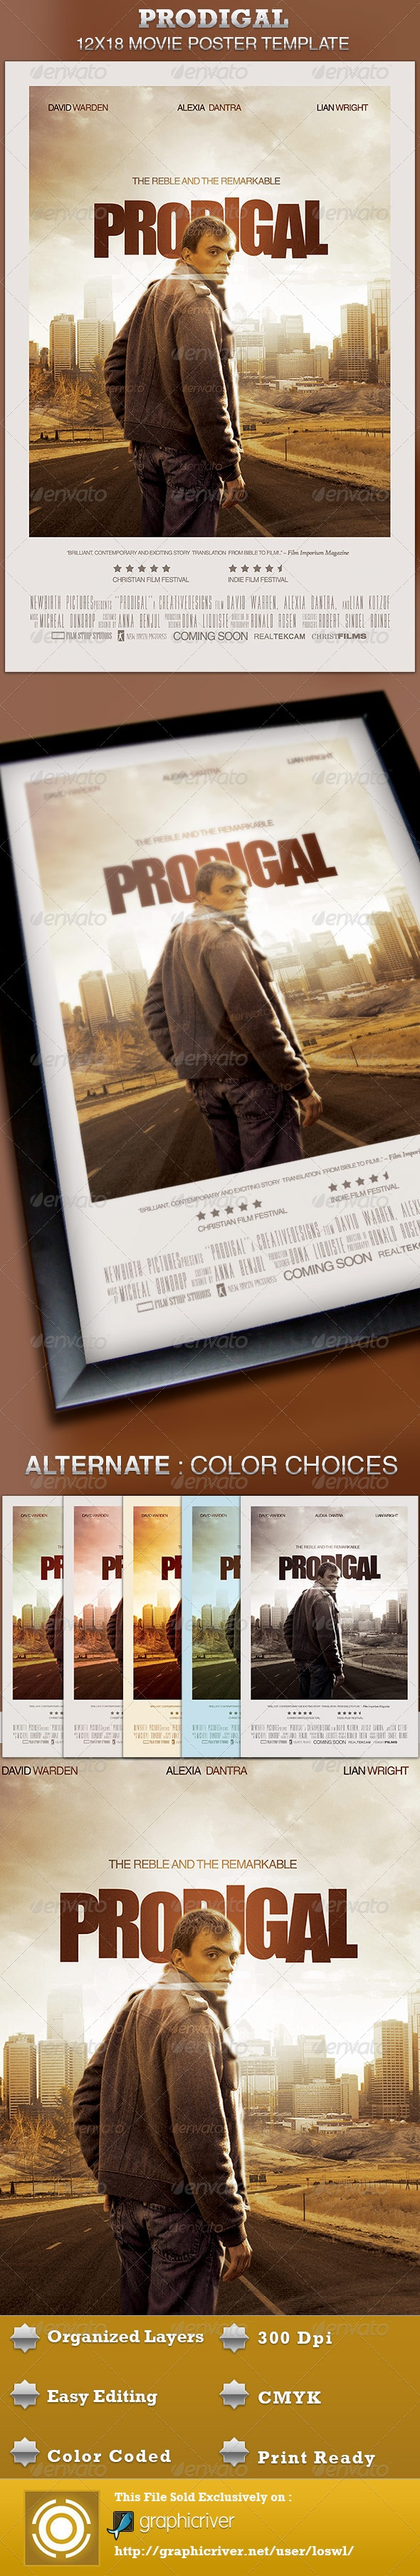 Prodigal Movie Poster Template - $6.00